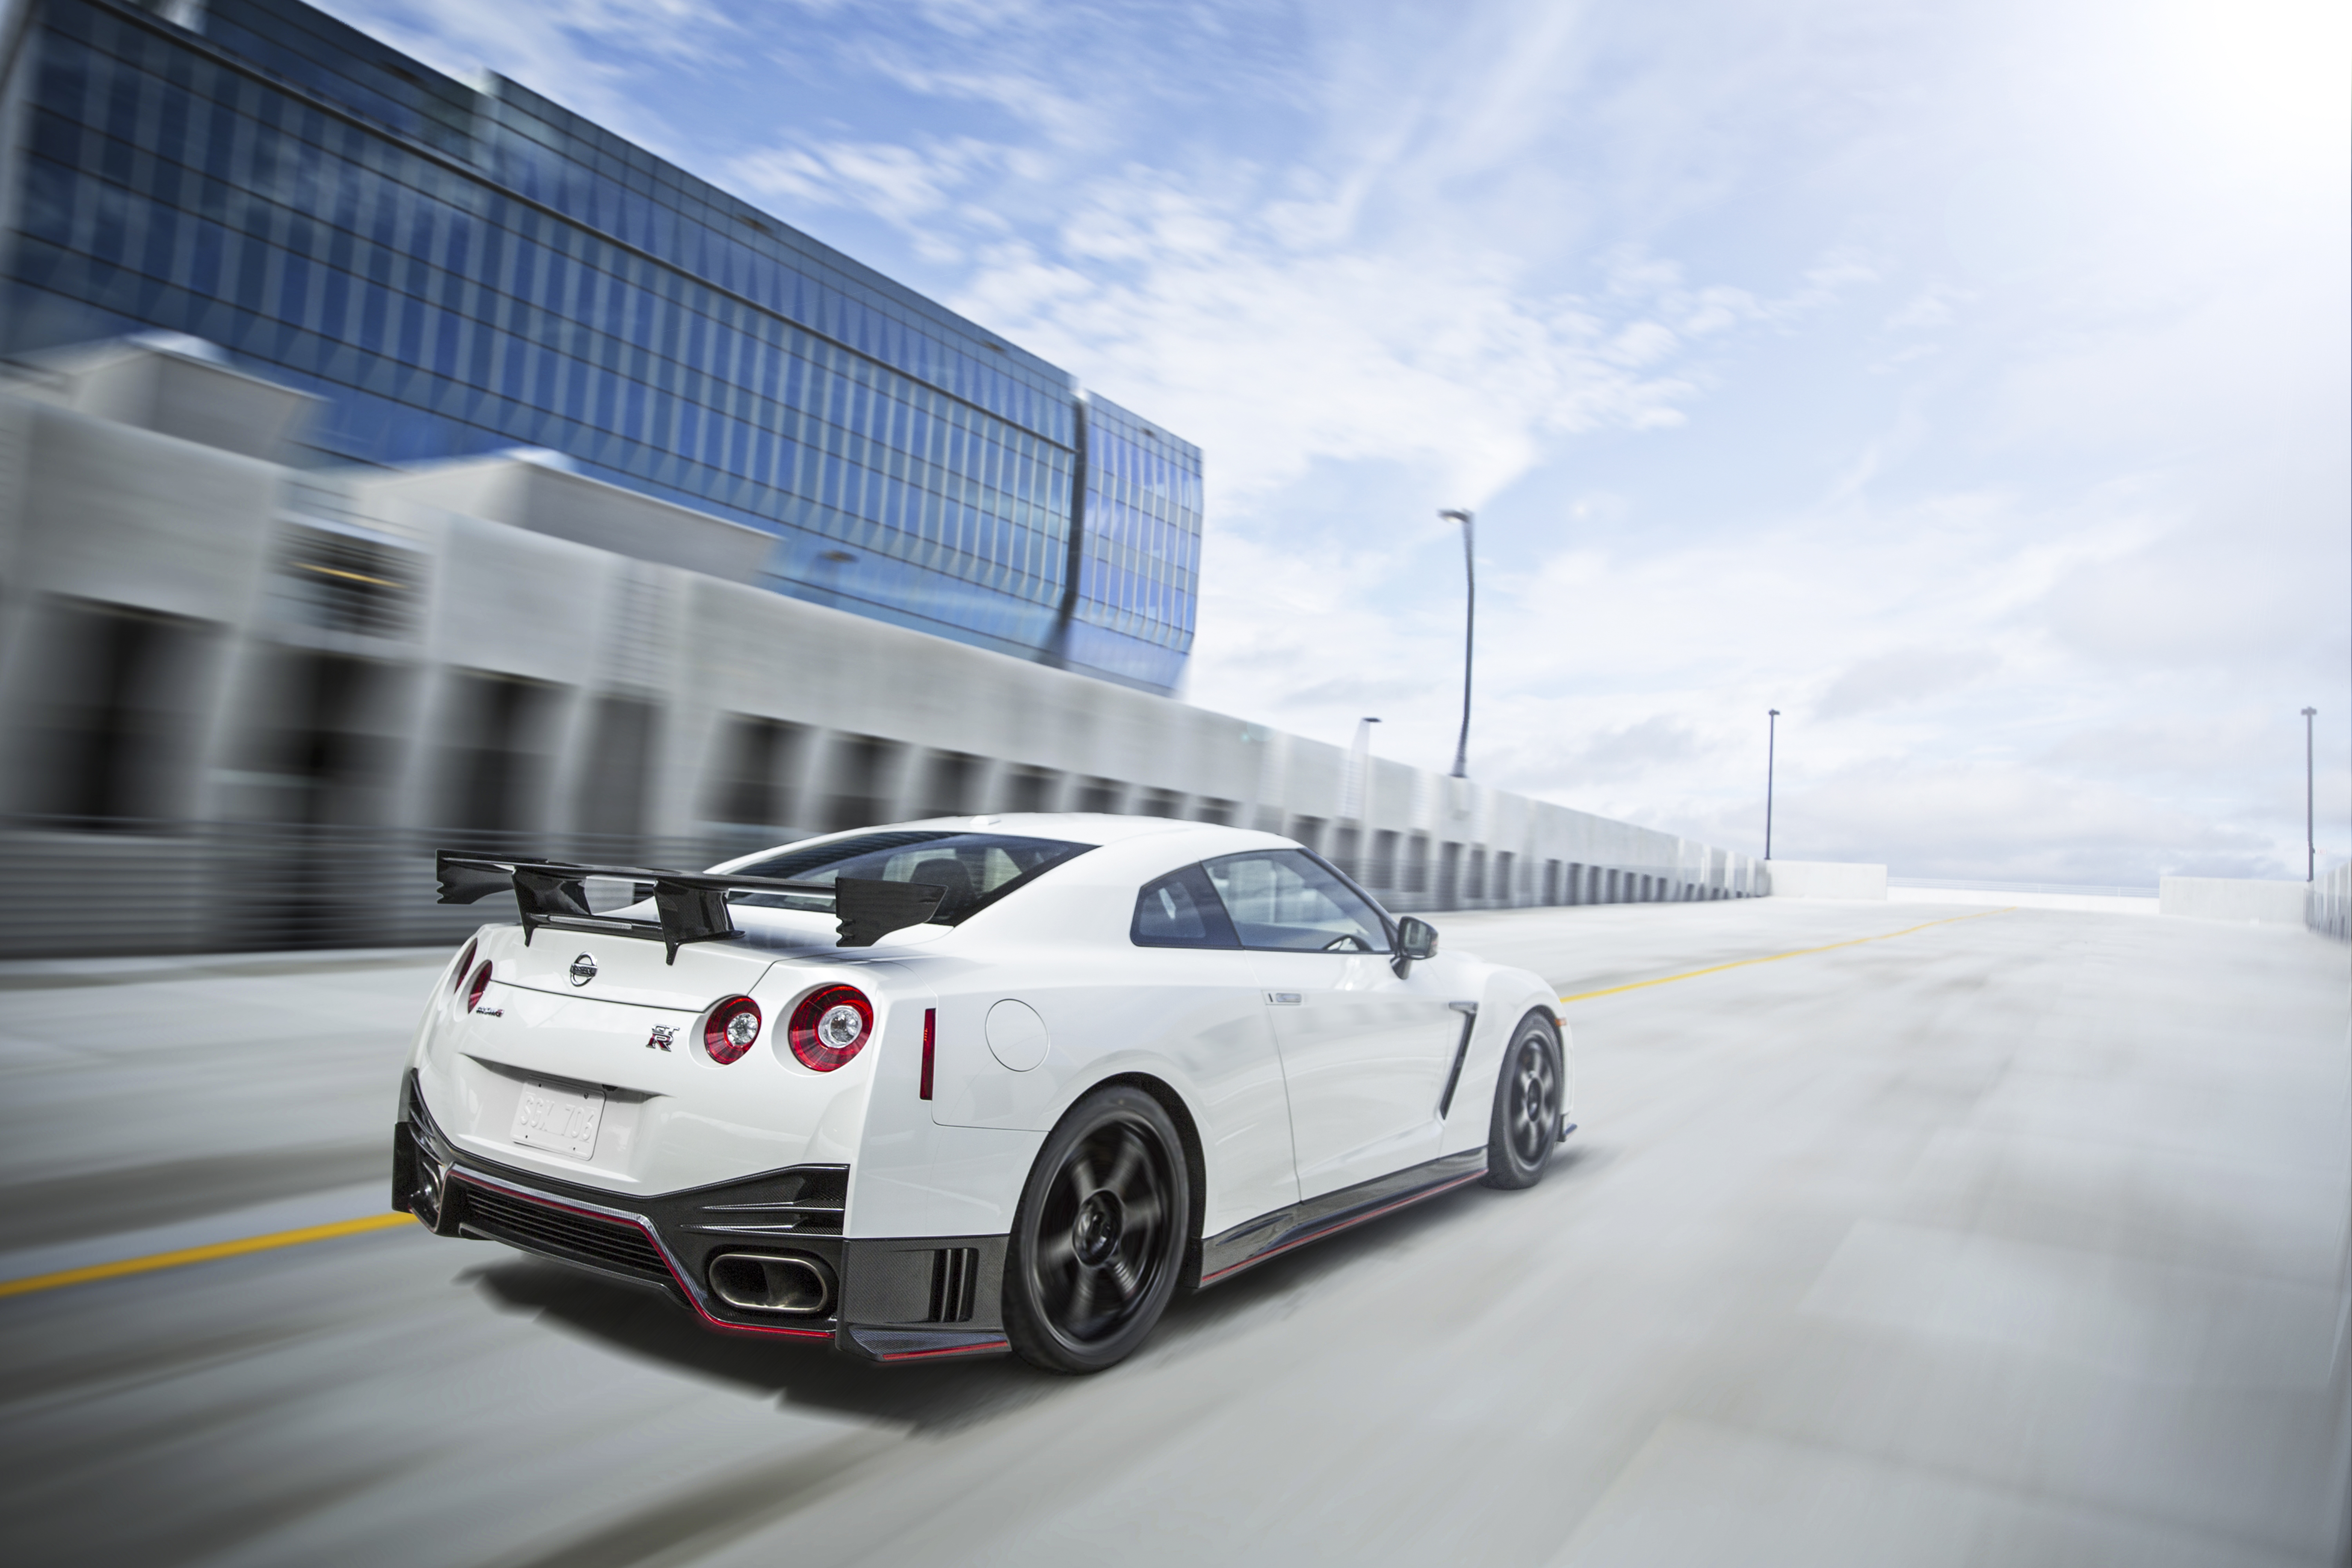 2016 nissan gt-r priced at $103,365 » autoguide news